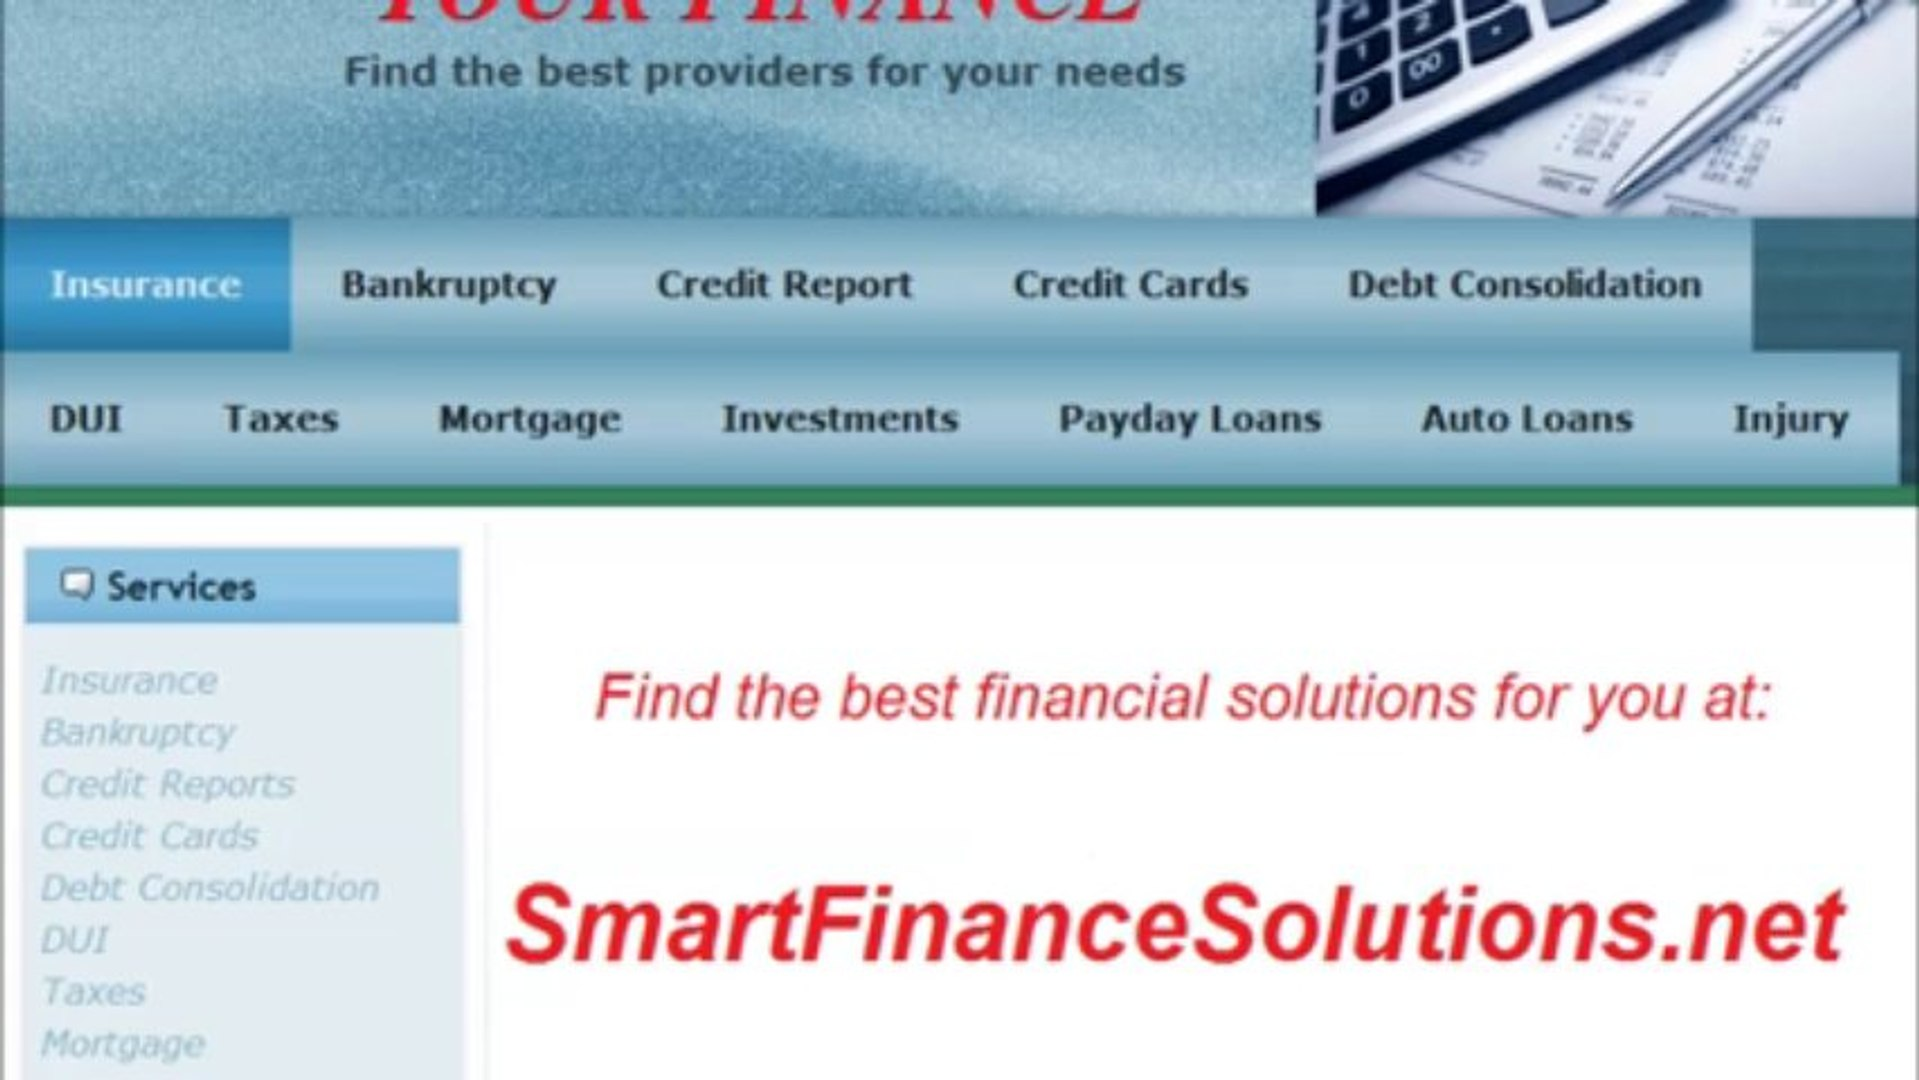 SMARTFINANCESOLUTIONS.NET - Can or will cash value of life insurance policy be used to satisfy debt